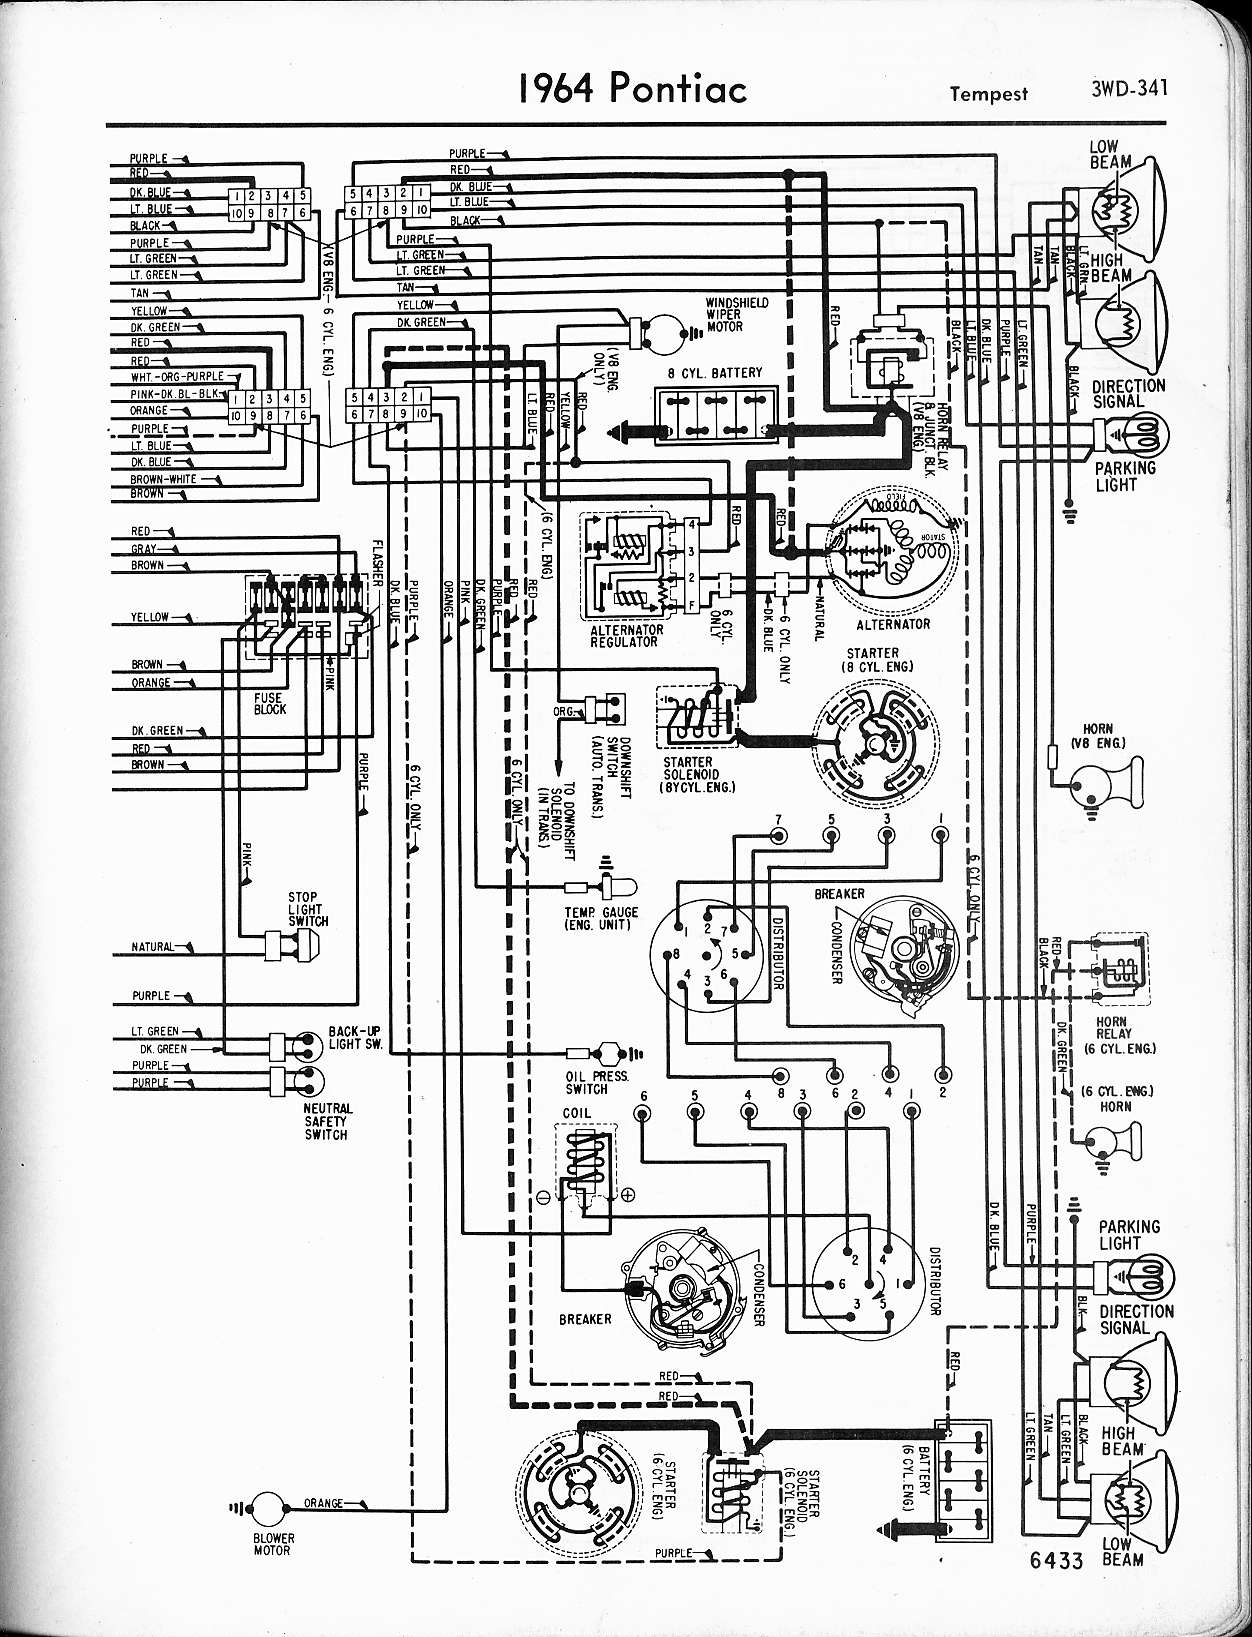 68 gto dash wiring diagram | online wiring diagram 1966 gto dash wiring diagram 1966 gto fuse panel diagram